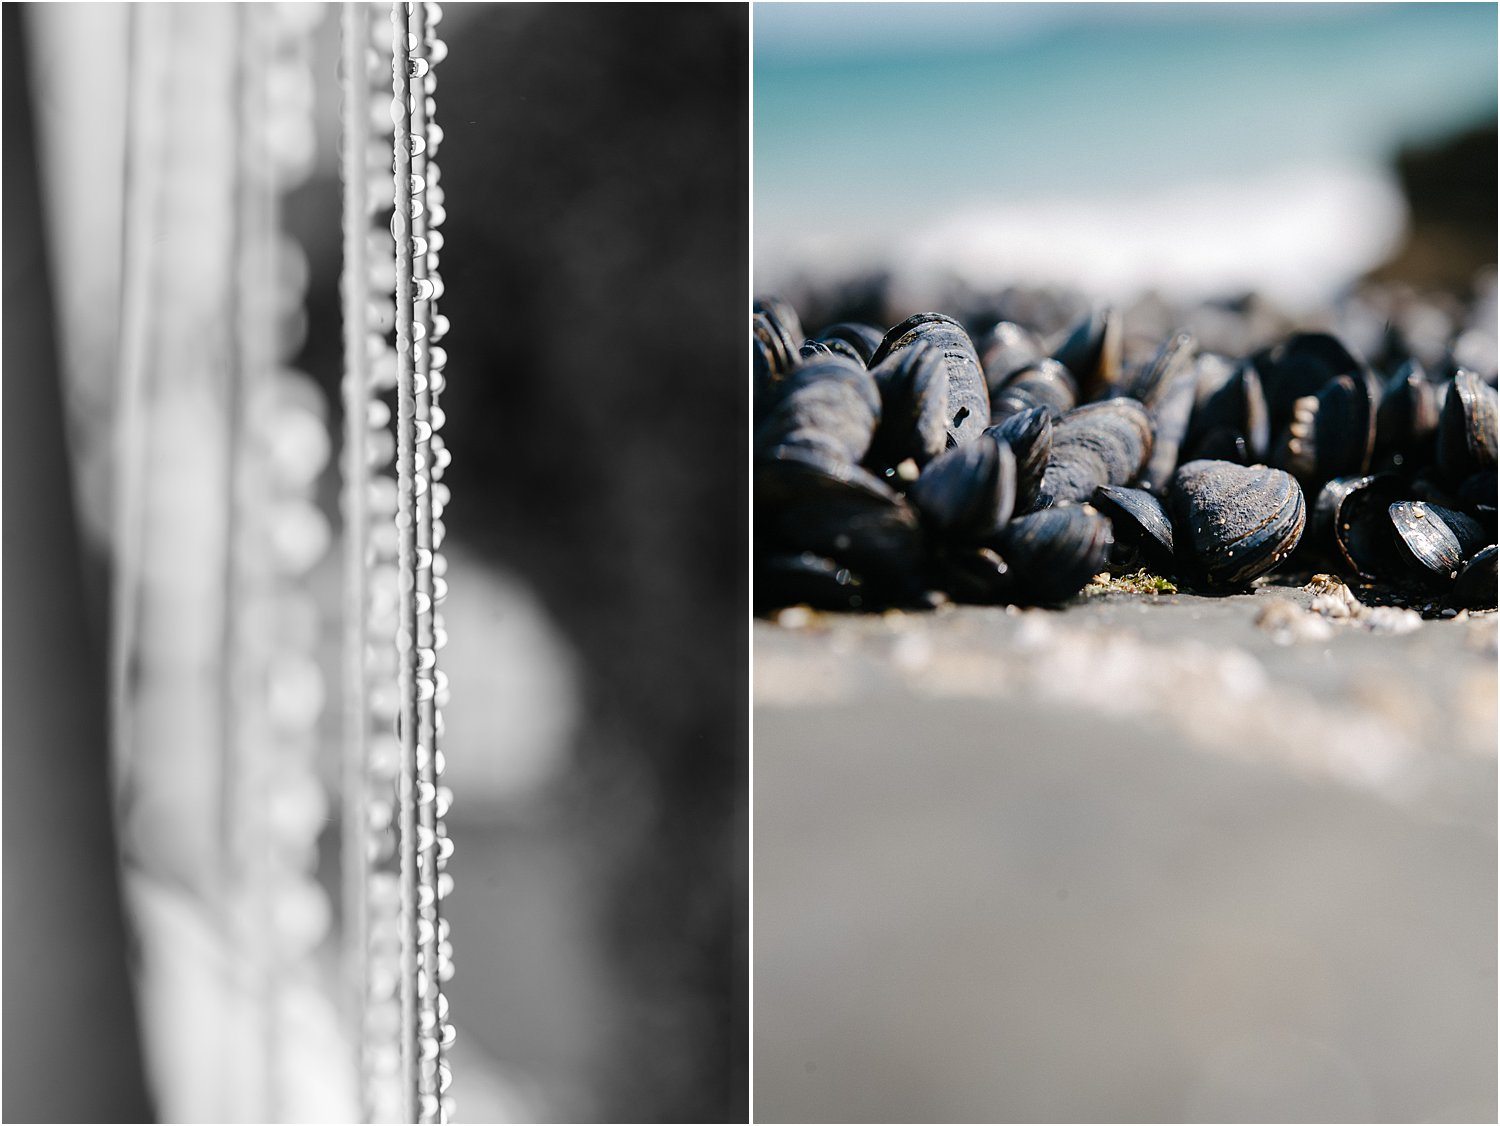 DPS How to use pattern and repetition in photography by Lily Sawyer – Dewdrops on a string and seashells on a beach